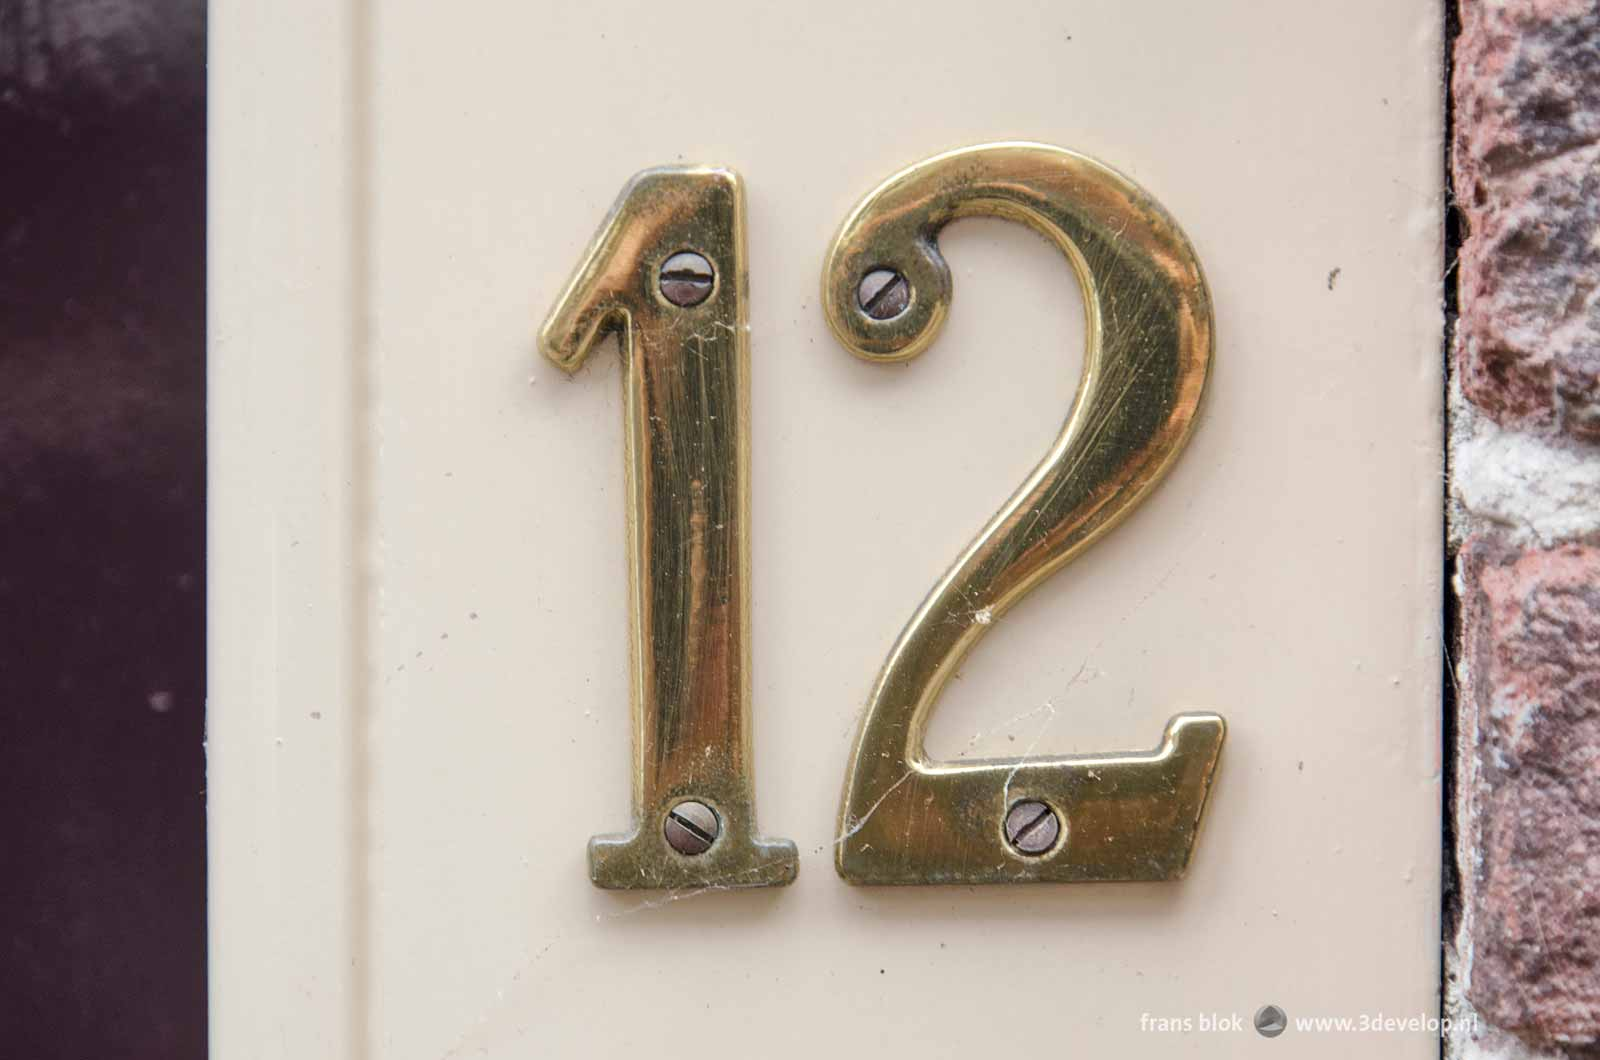 The number 12 as gold leaf house number on a white lacquered wooden background with some remnants of cobwebs on it.